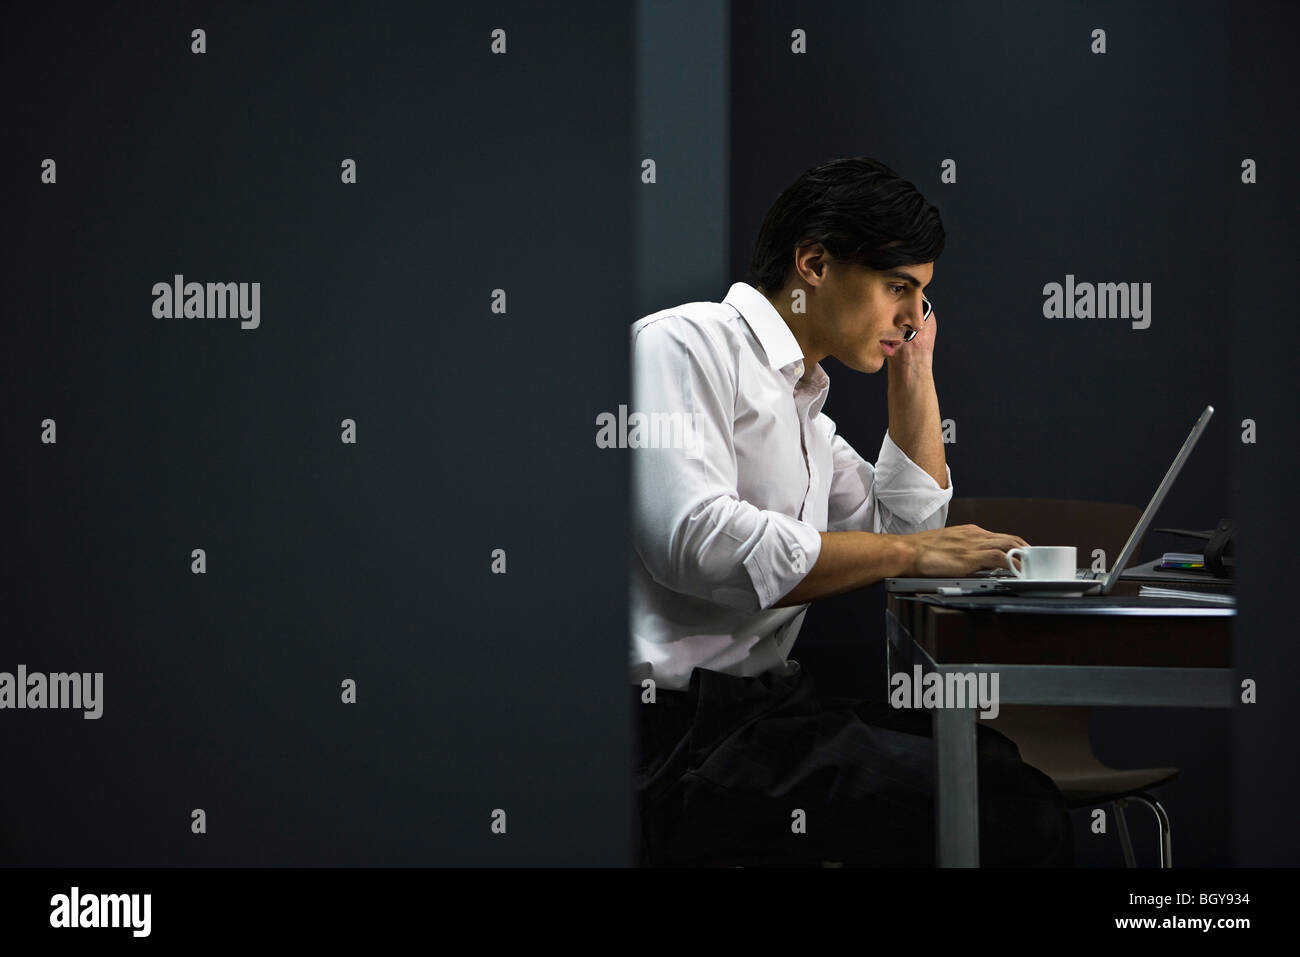 Man in office working late - Stock Image